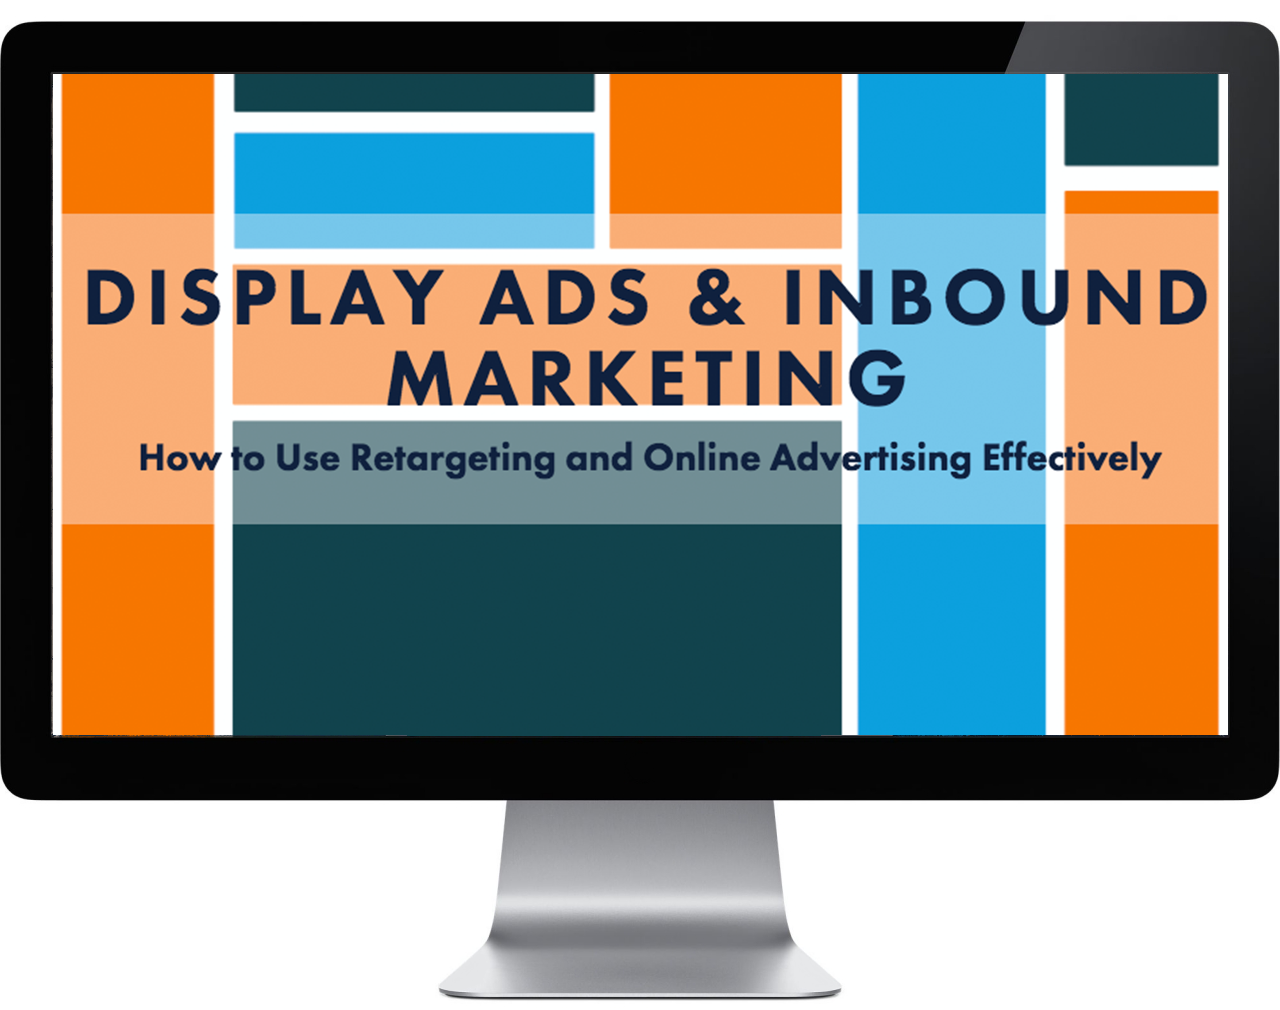 Display Ads & Inbound Marketing